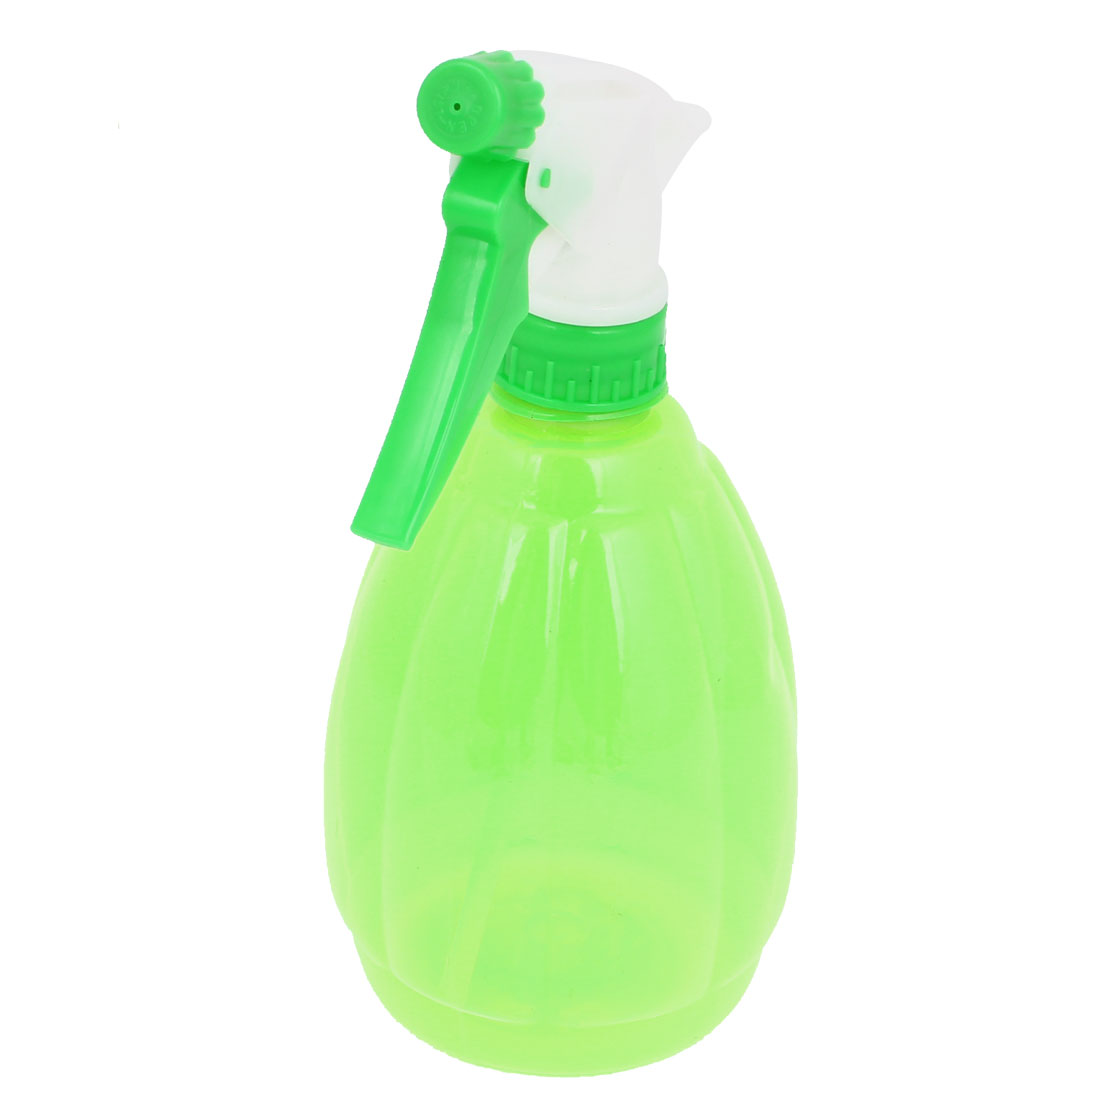 Plastic Trigger Hairdressing Plant Watering Spray Bottle Clear Green